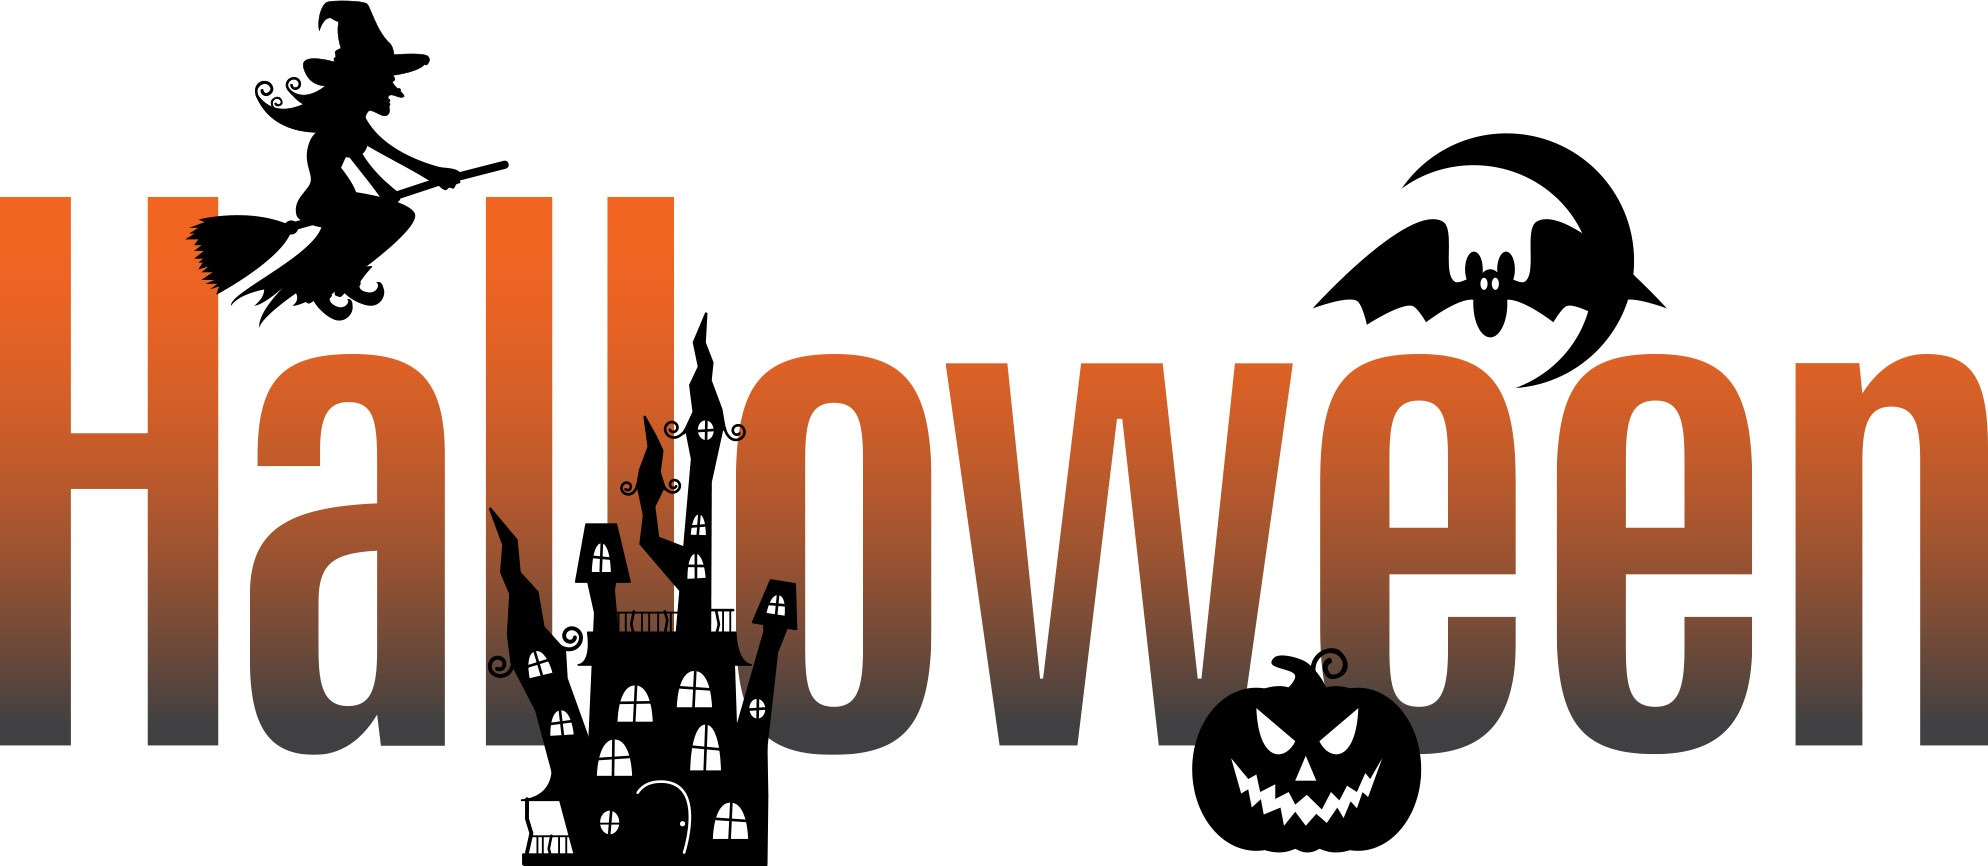 halloween party clipart at getdrawings com free for personal use rh getdrawings com halloween party clipart images halloween party clip art humor